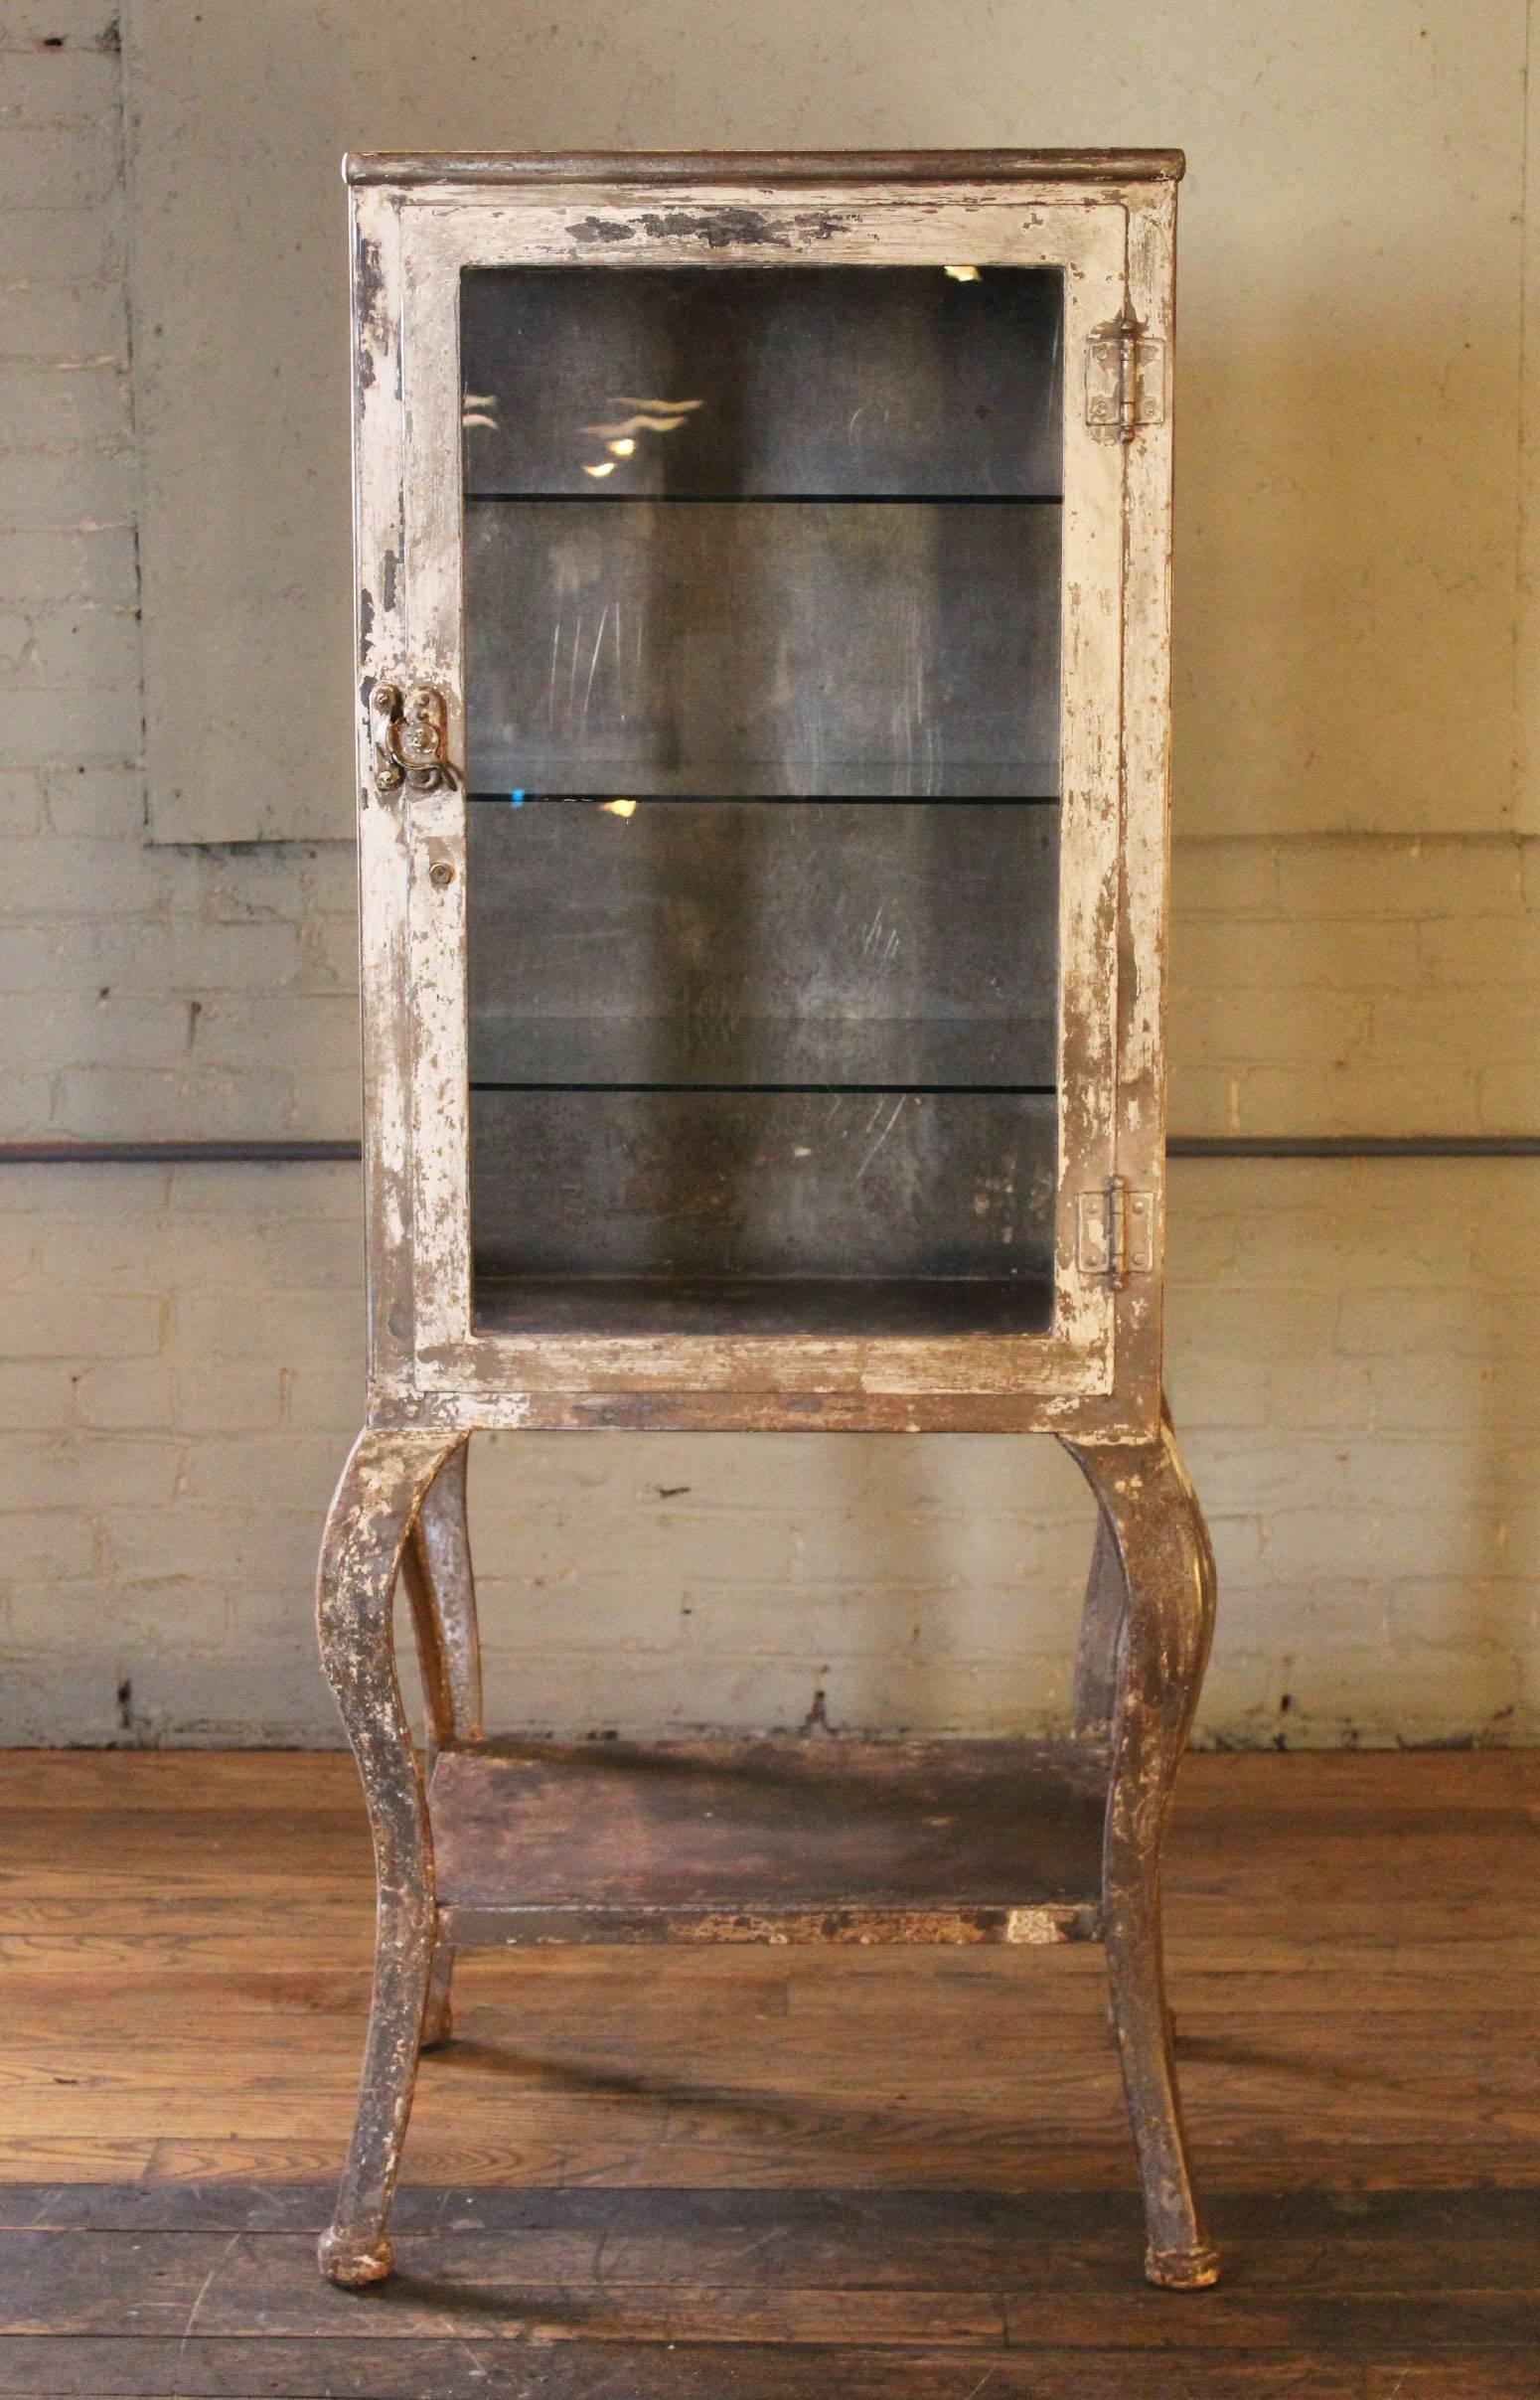 Antique Medical Cabinet with Cabriole Legs, Steel and Glass Apothecary For  Sale at 1stdibs - Antique Medical Cabinet With Cabriole Legs, Steel And Glass